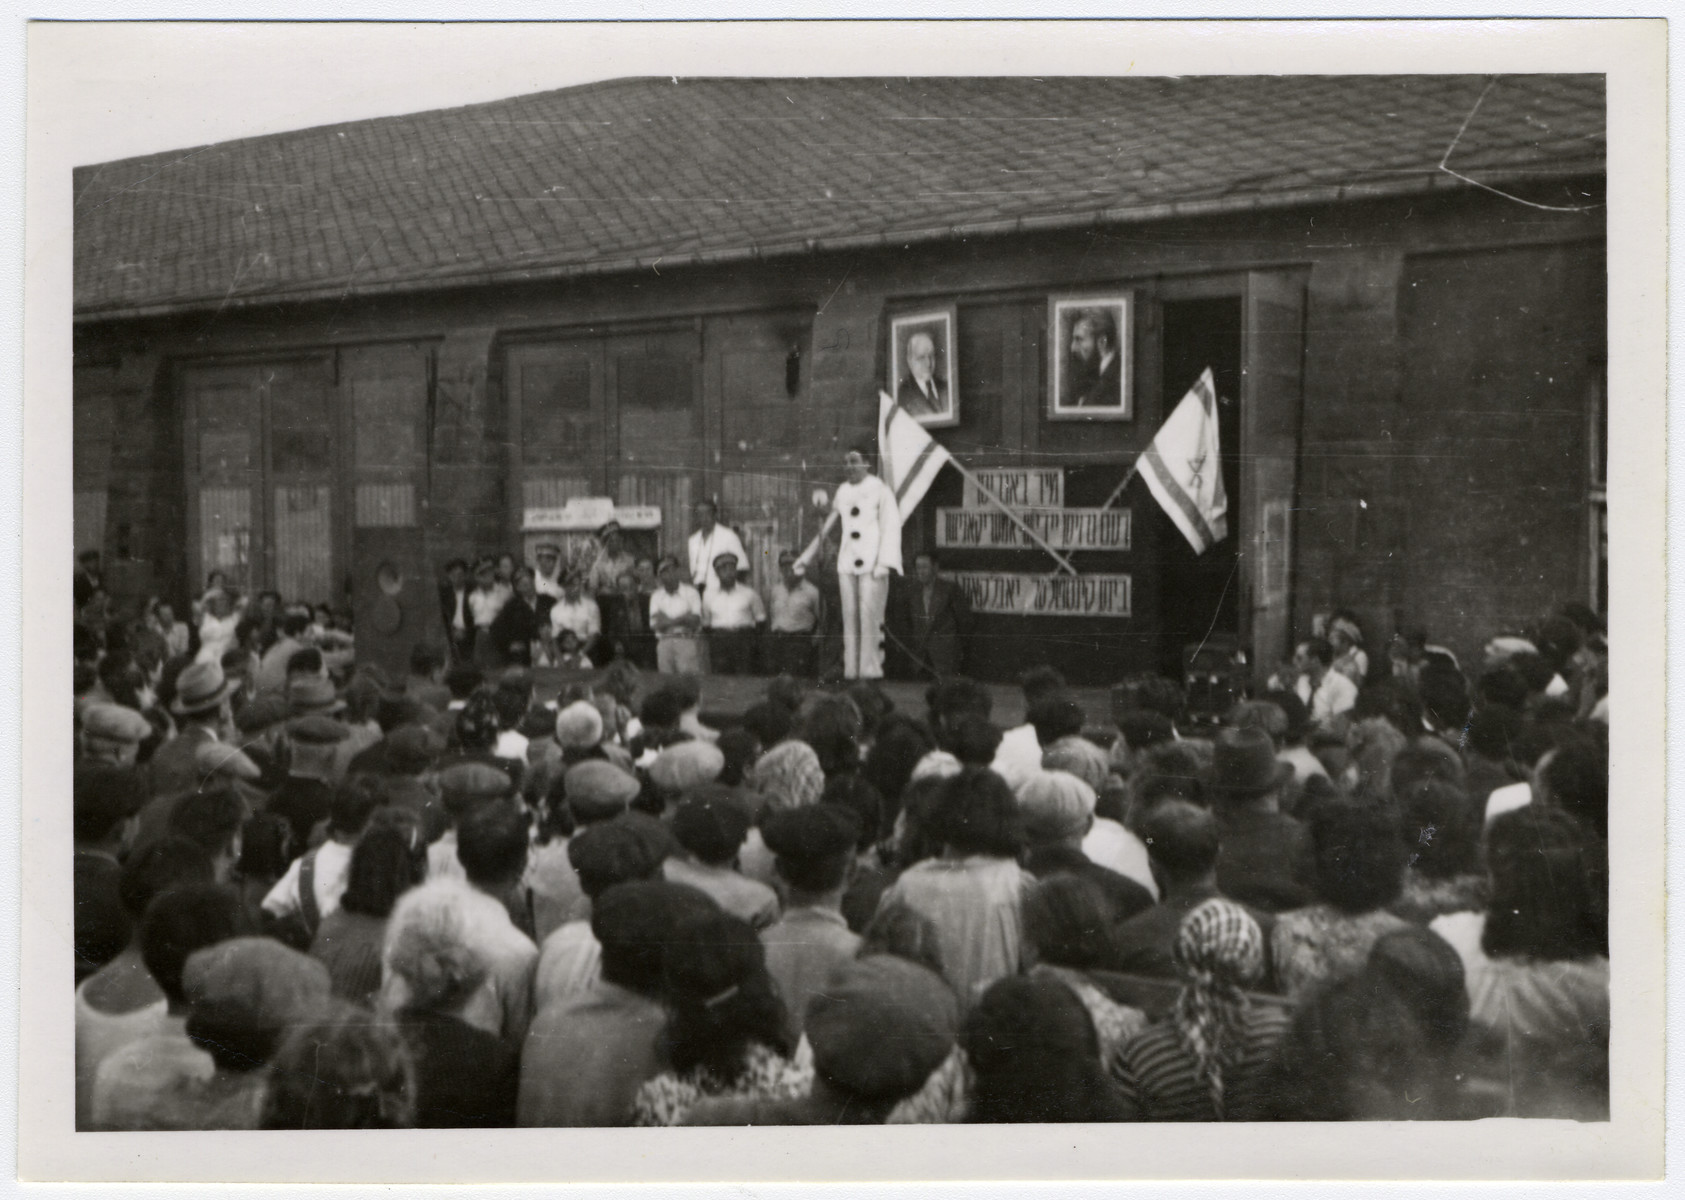 Jewish displaced persons celebrate the establishment of the State of Israel in the Munich displaced persons' camp.